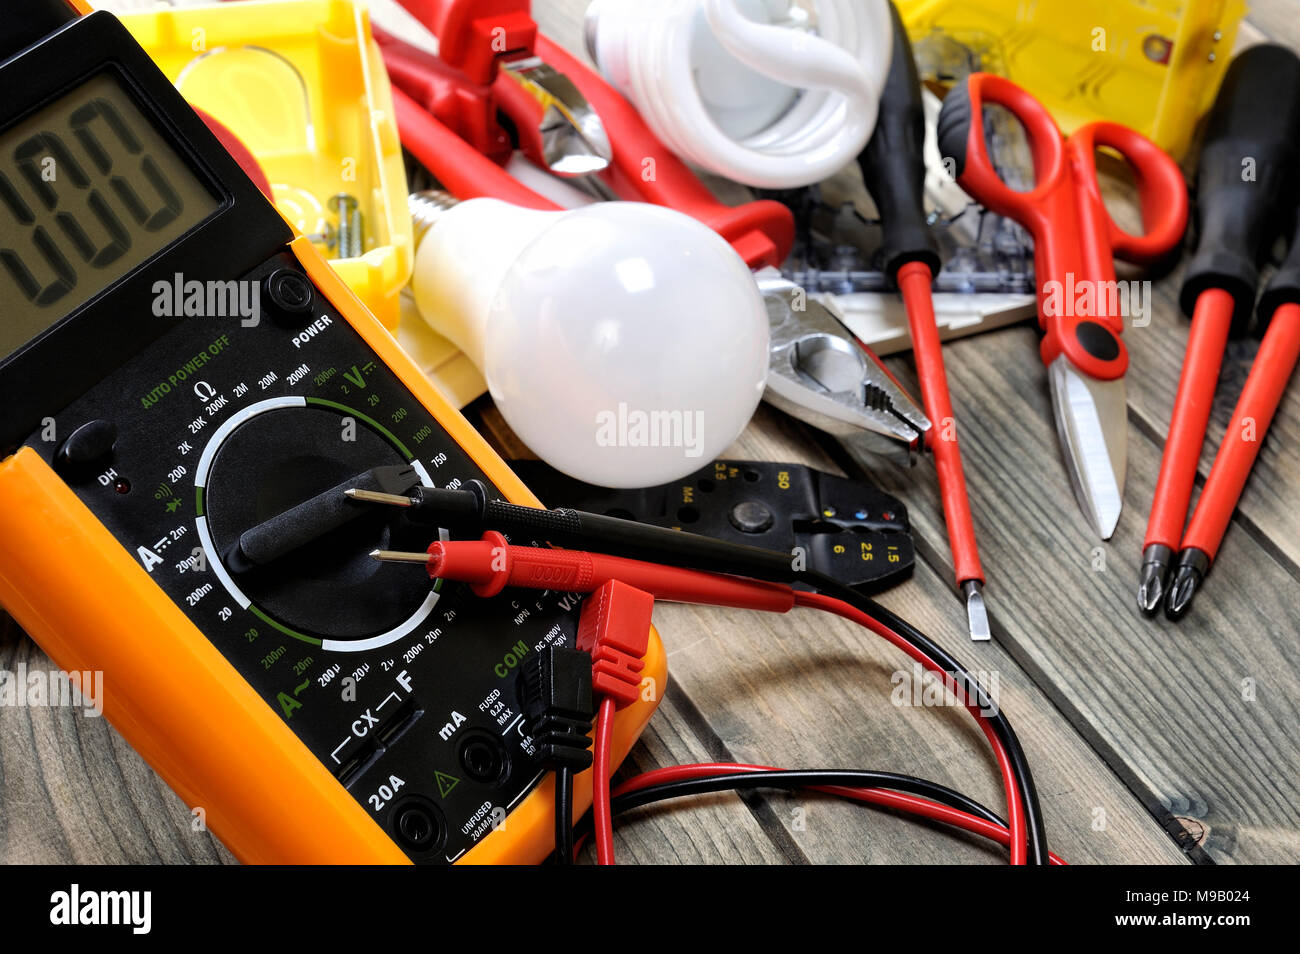 Enjoyable Close Up Of A Tester And Other Components For Residential Electrical Wiring Digital Resources Cettecompassionincorg